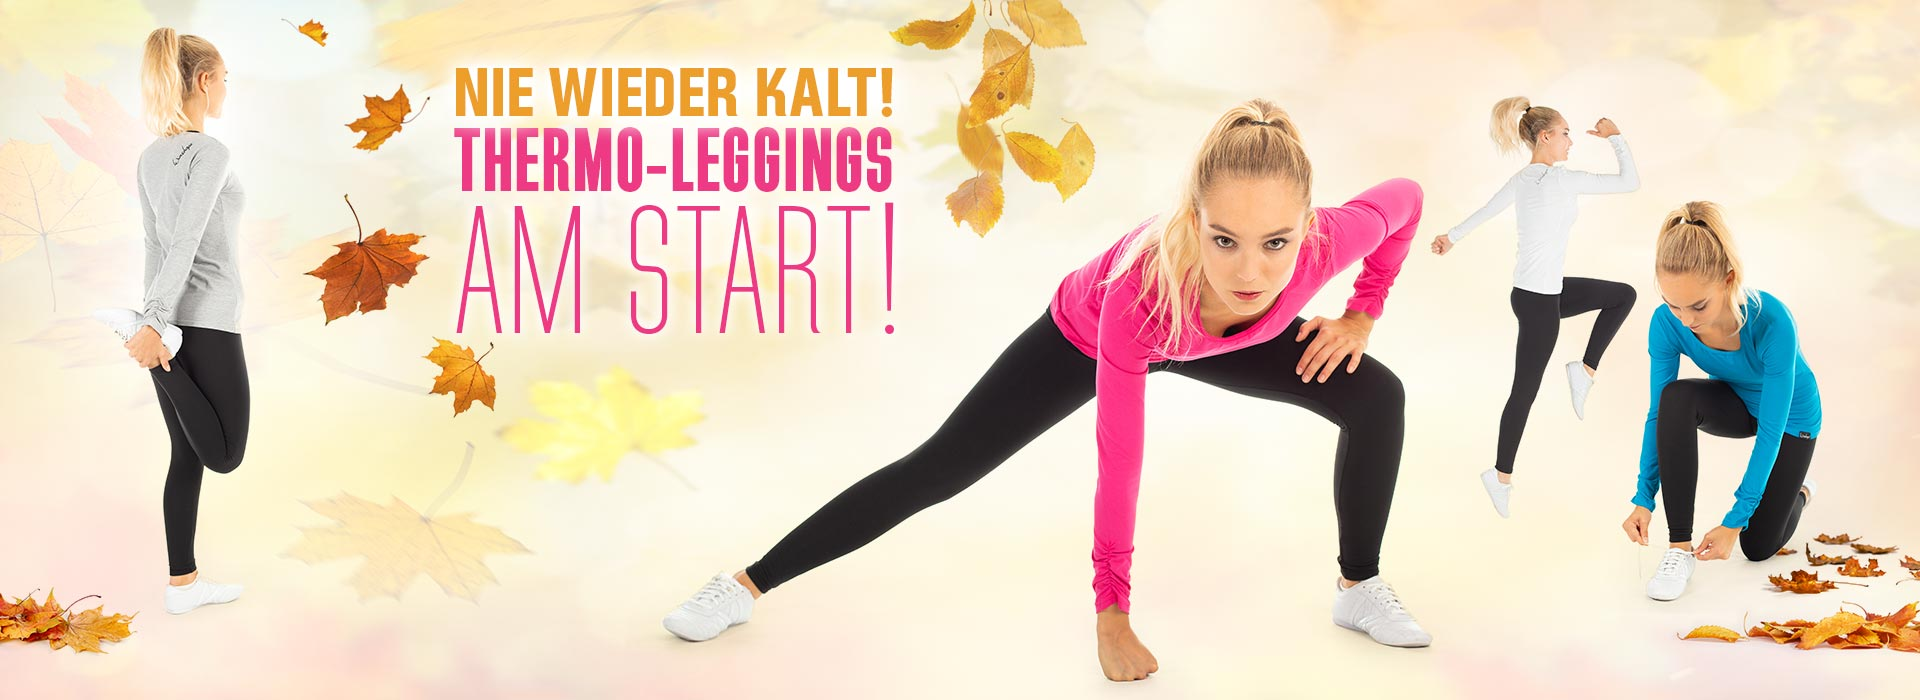 Nie wieder kalt! Thermo-Leggings am Start!